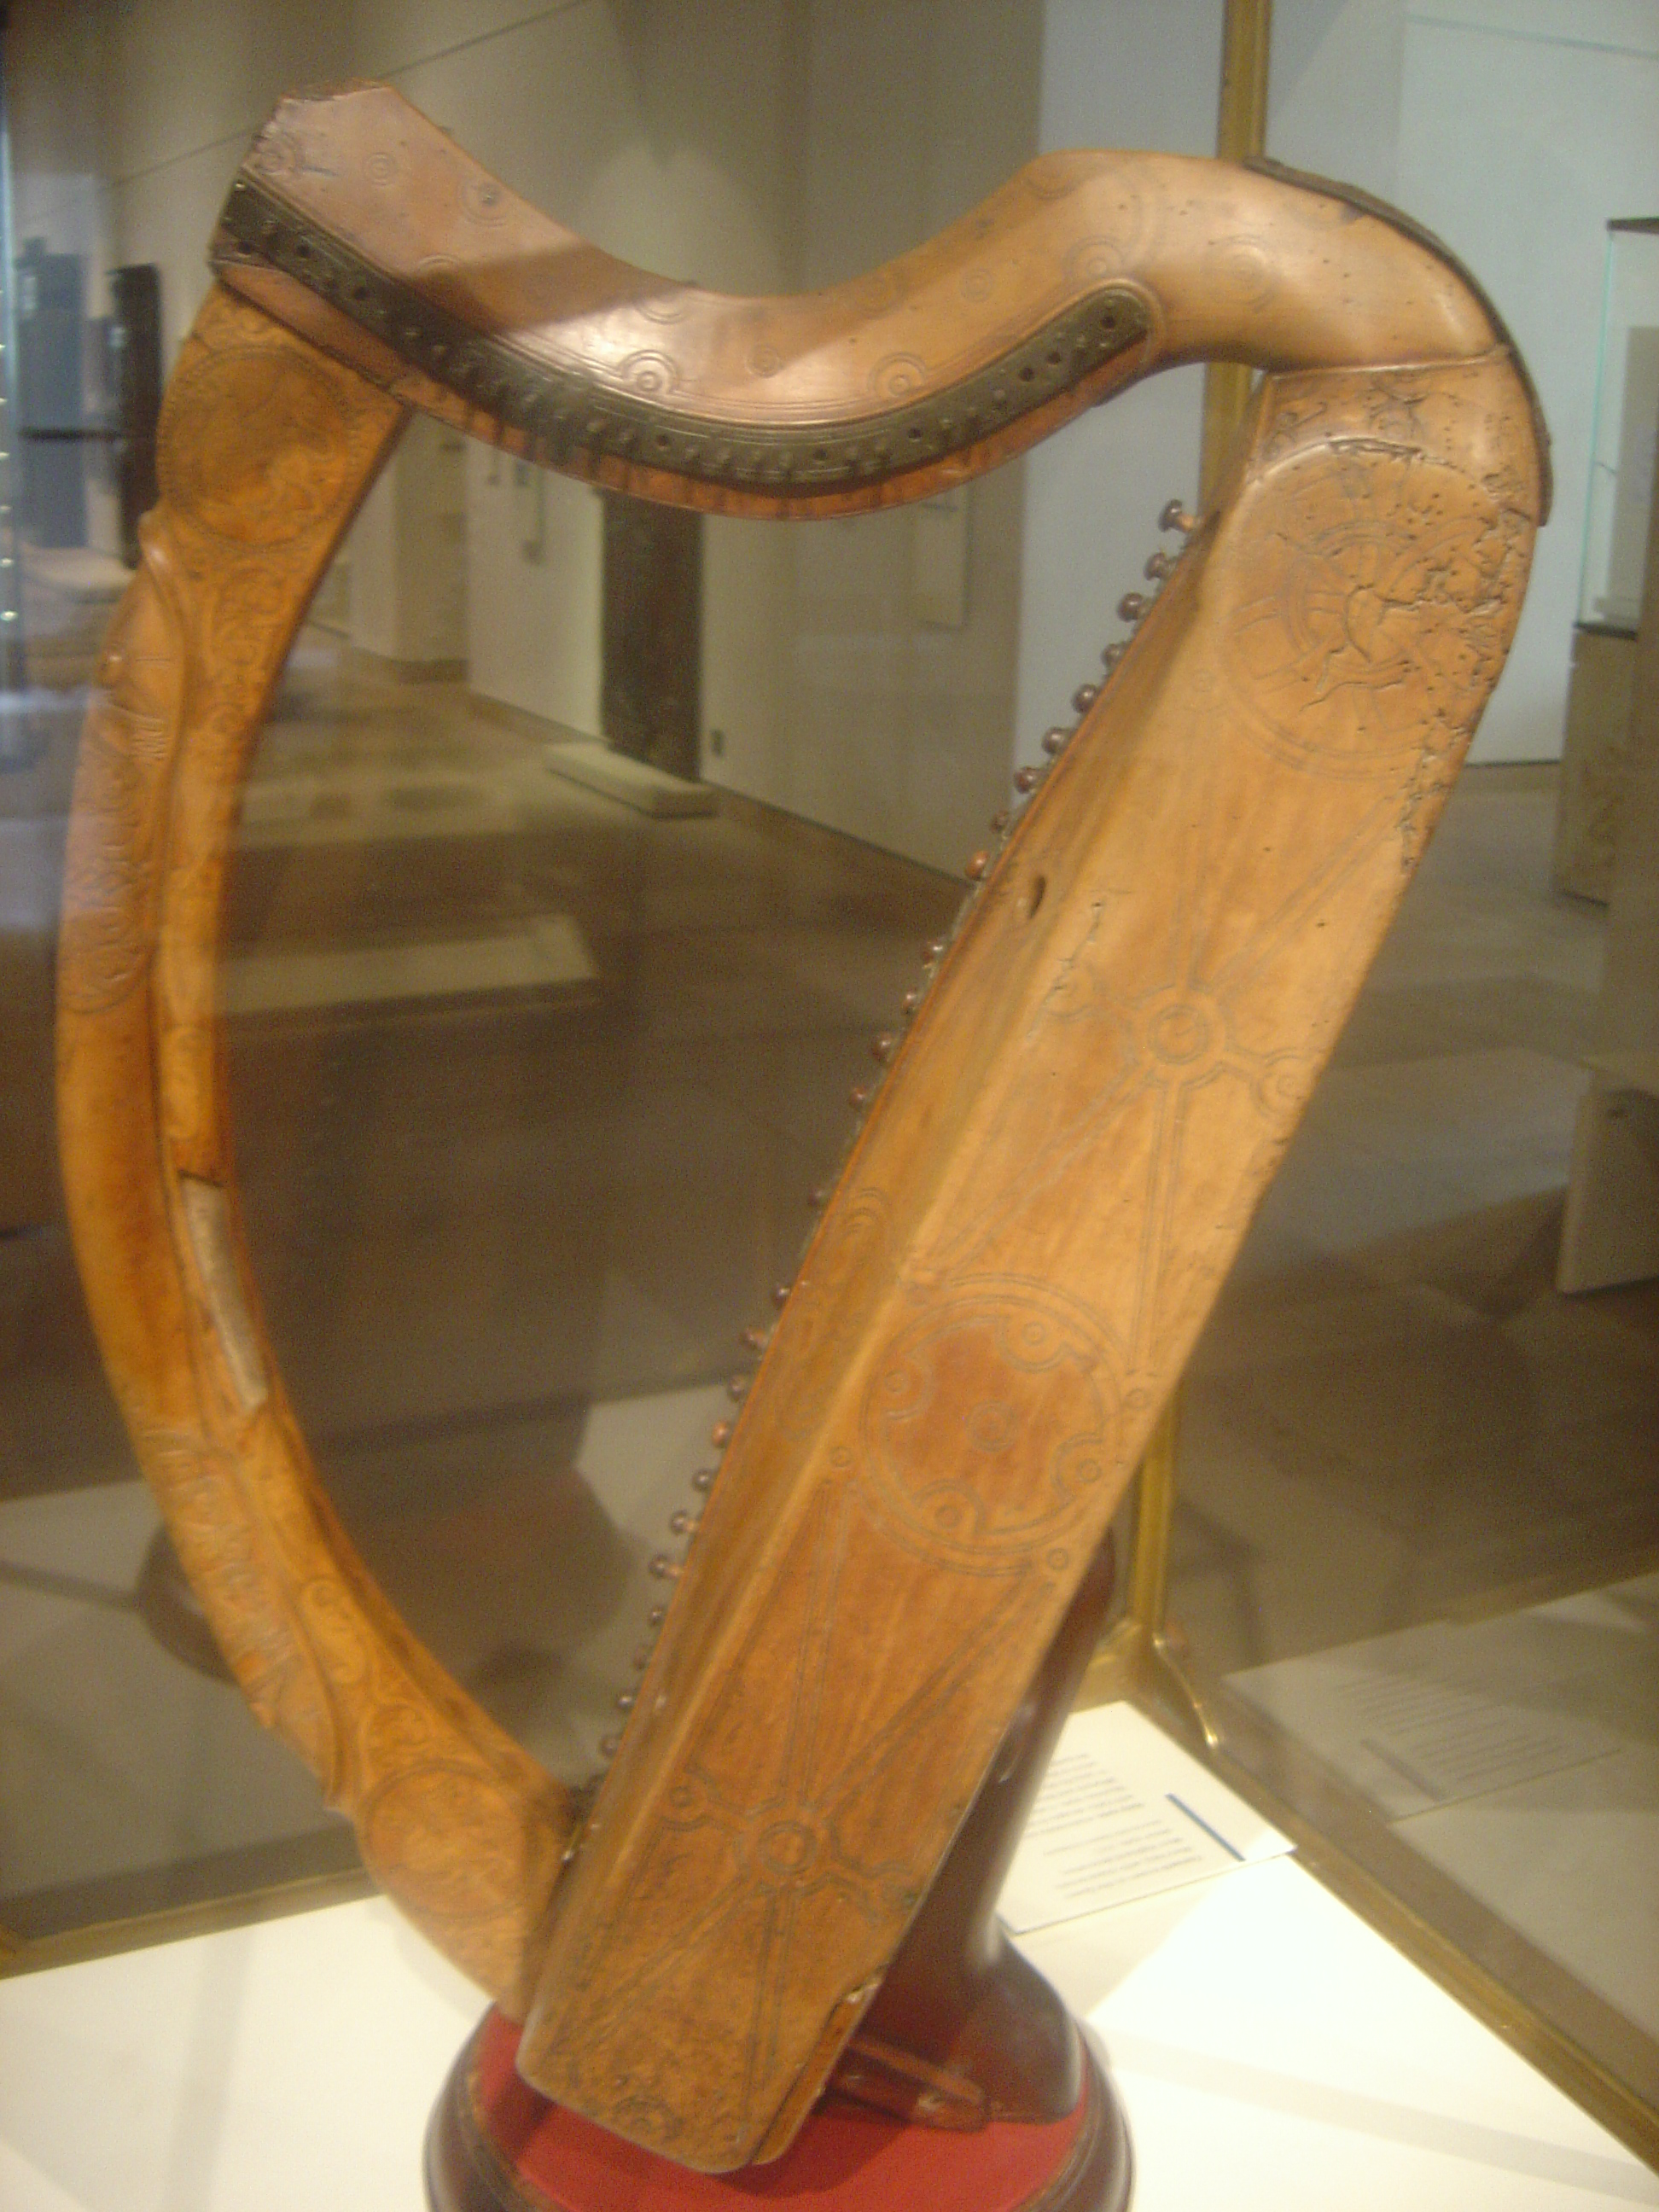 File:Celtic harp dsc05425.jpg - Wikipedia, the free encyclopedia